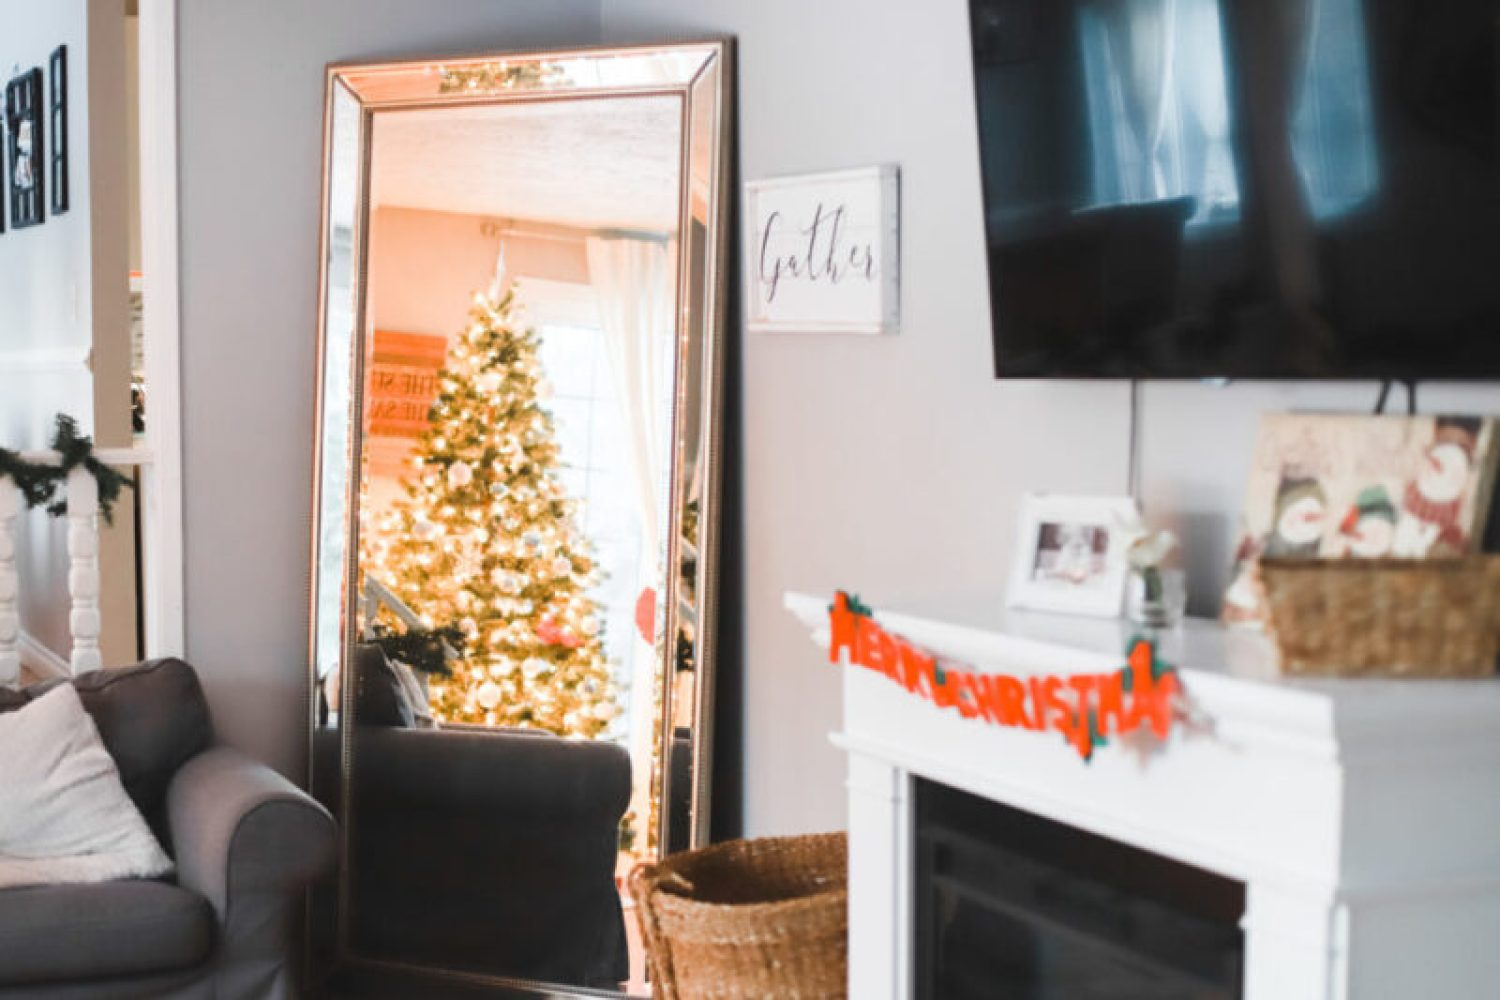 This is our living room home tour with minimal, cozy, and affordable Christmas decorations for the holiday season. I'll be linking everything from our rug, furniture, and accents, to our Christmas tree and electric fireplace. Home Design | Home Decor | Christmas Decor | Christmas Decorations | Deck The Halls | Holiday Decorating | Xmas Tree | Ikea Ektorp Sofa | Nordvalla Grey | Hemnes Sofa Table | TV on Top of Fireplace | Mantel |